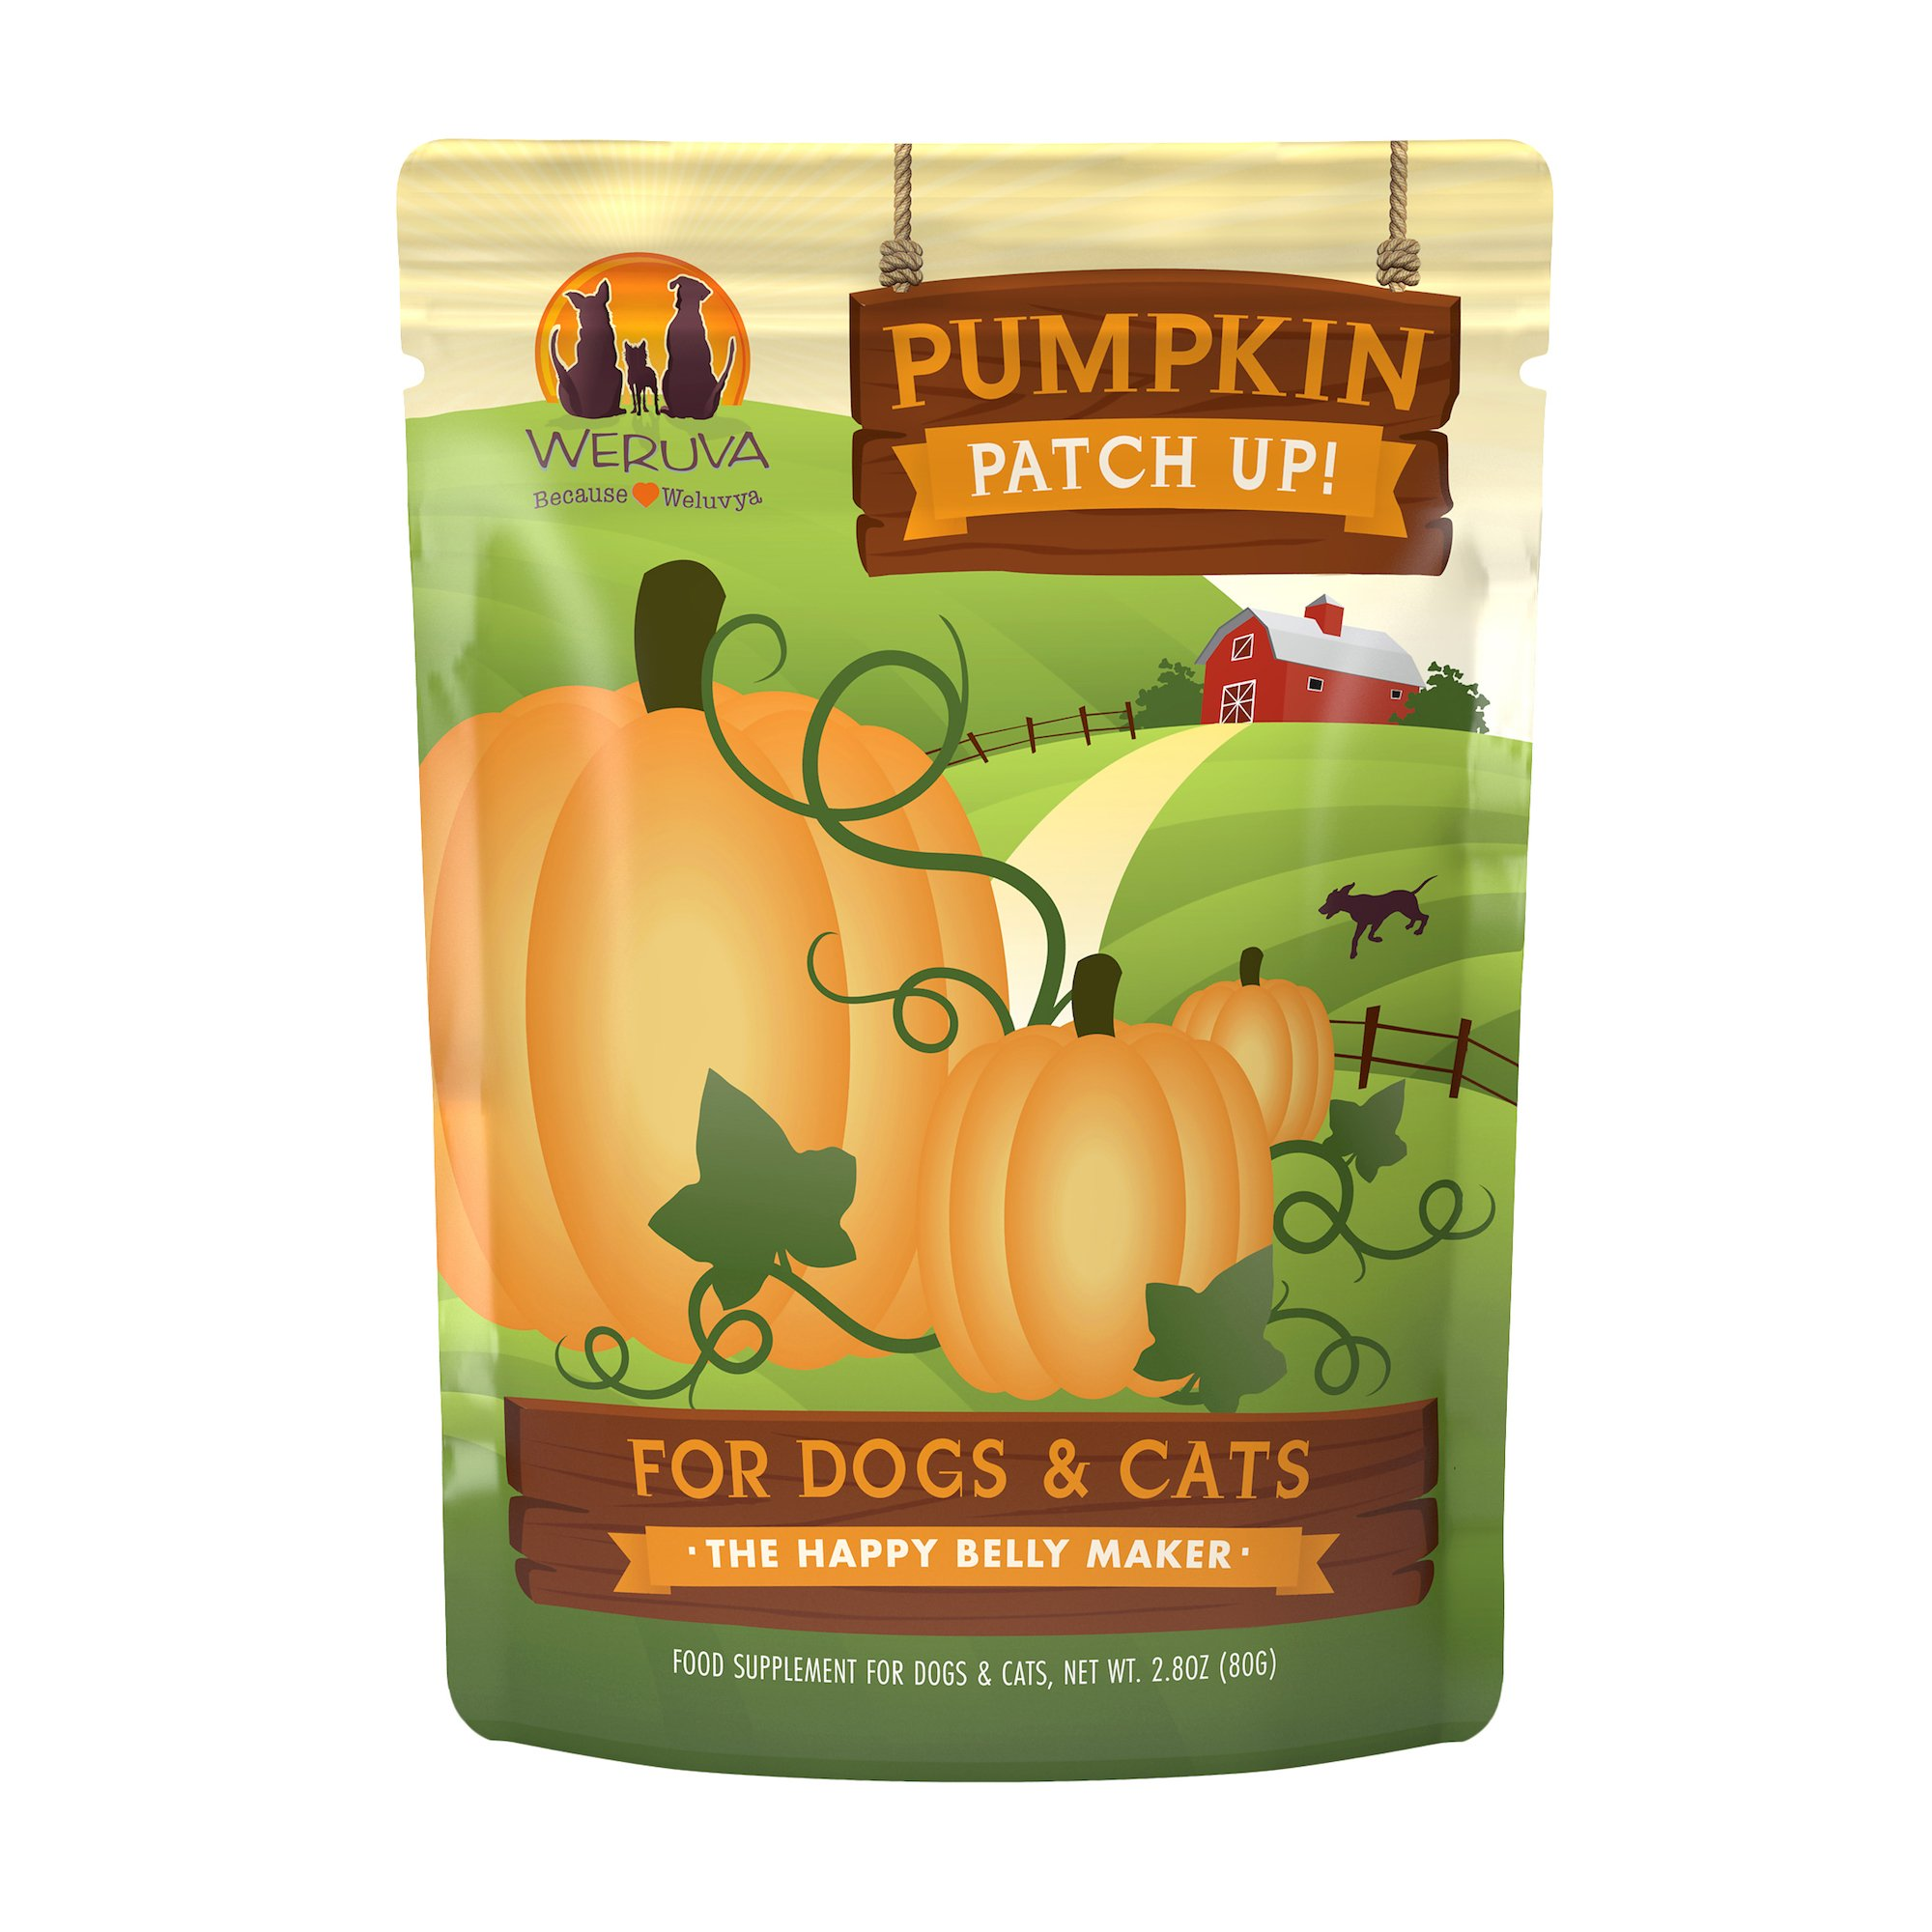 Weruva Pumpkin Patch Up! Supplement for Dogs and Cats, 2.8 oz., Case of 12, 12 X 2.8 OZ